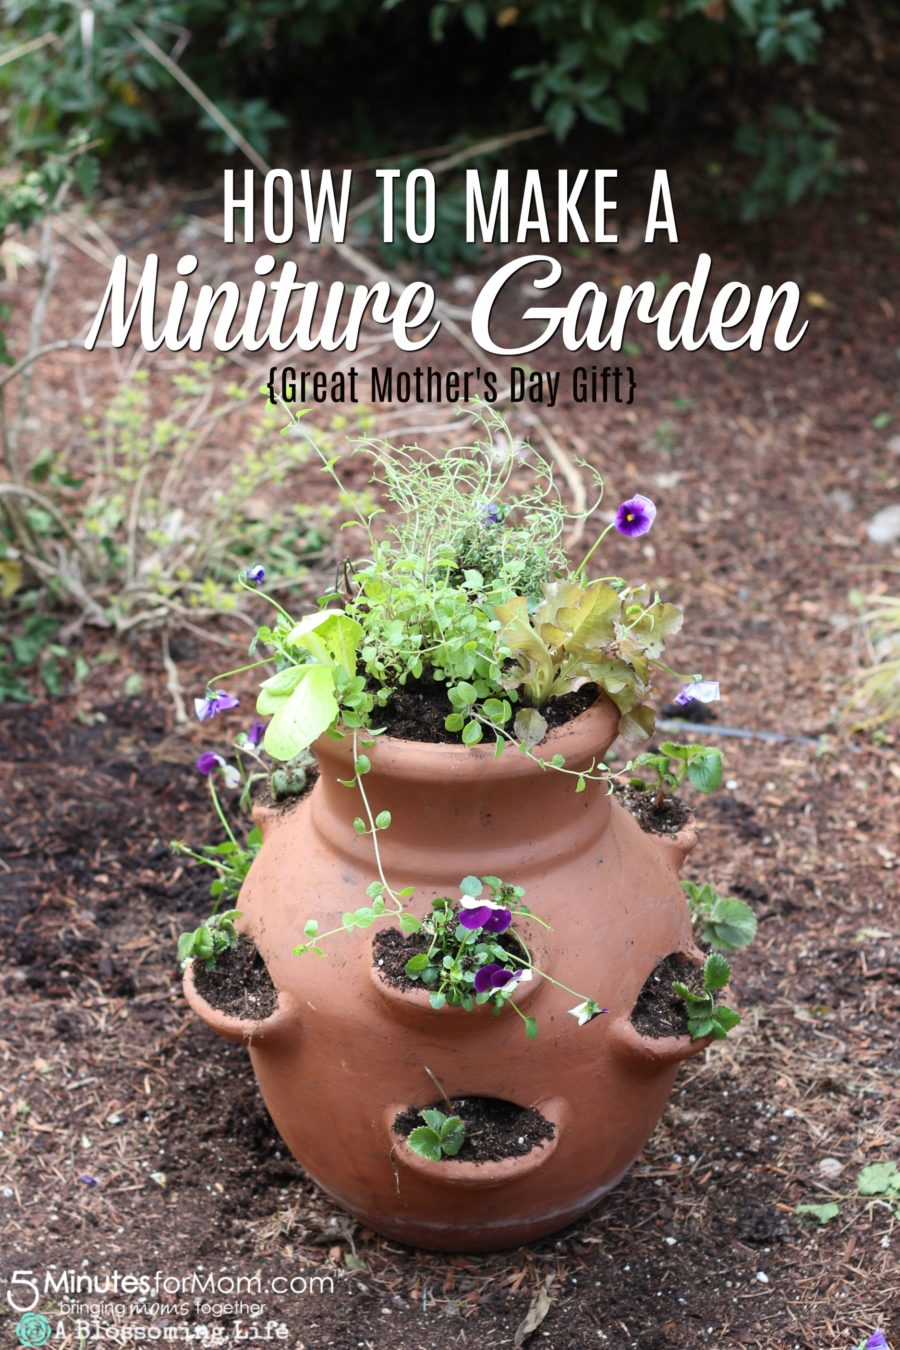 How To Make a Miniature Edible Garden